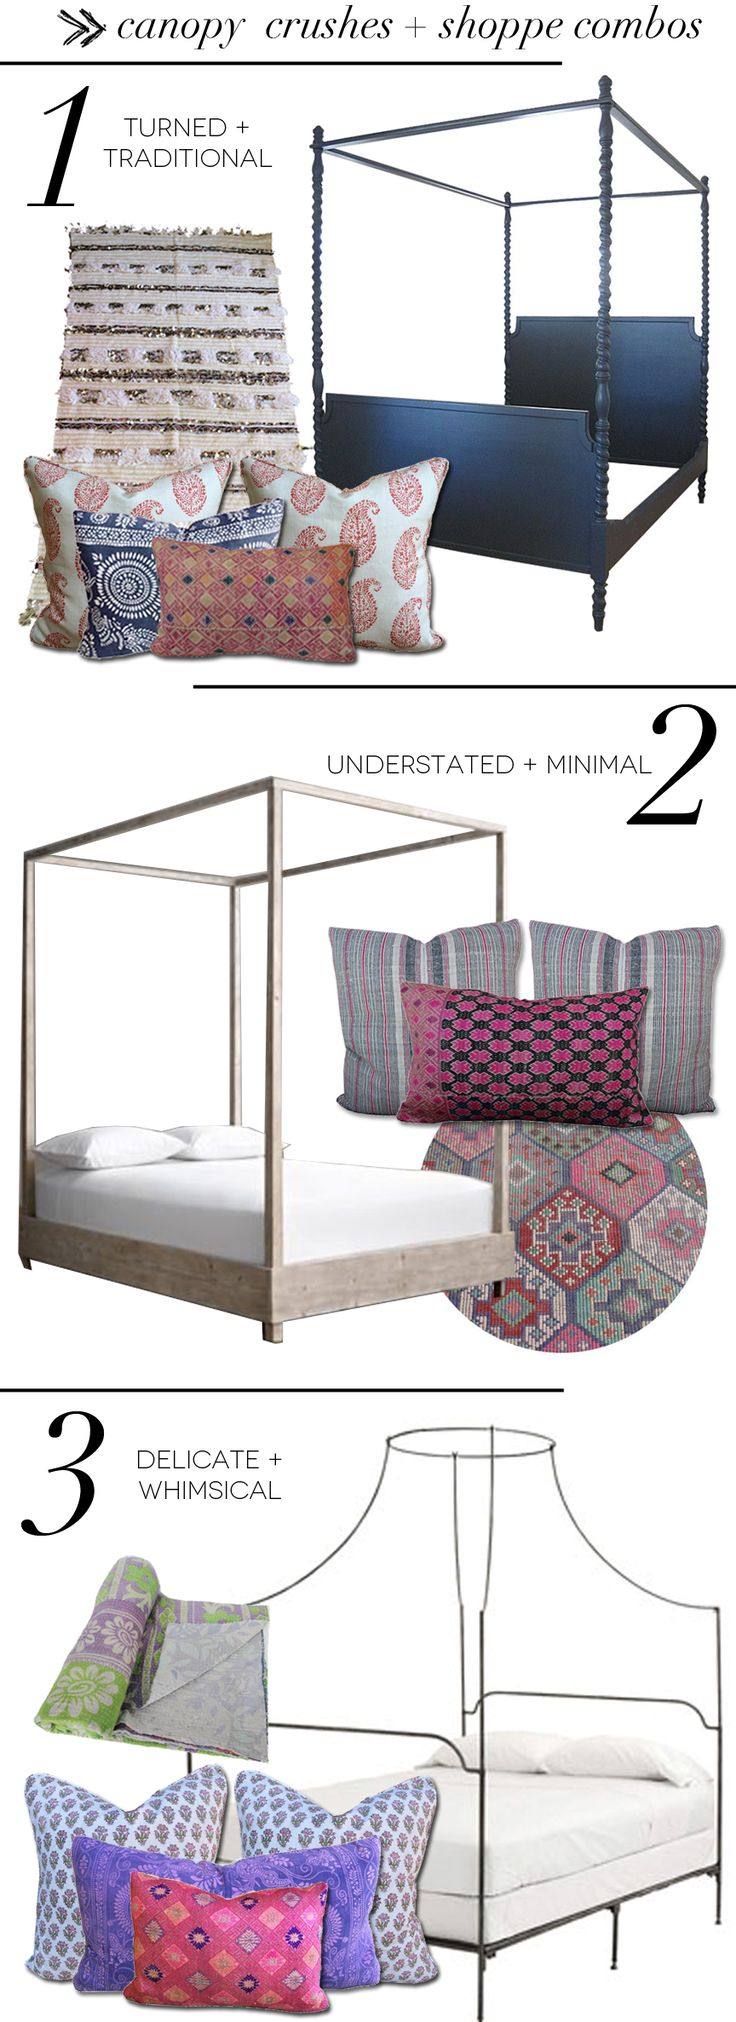 Canopy Crushes + Shoppe Combos - Amber Interiors